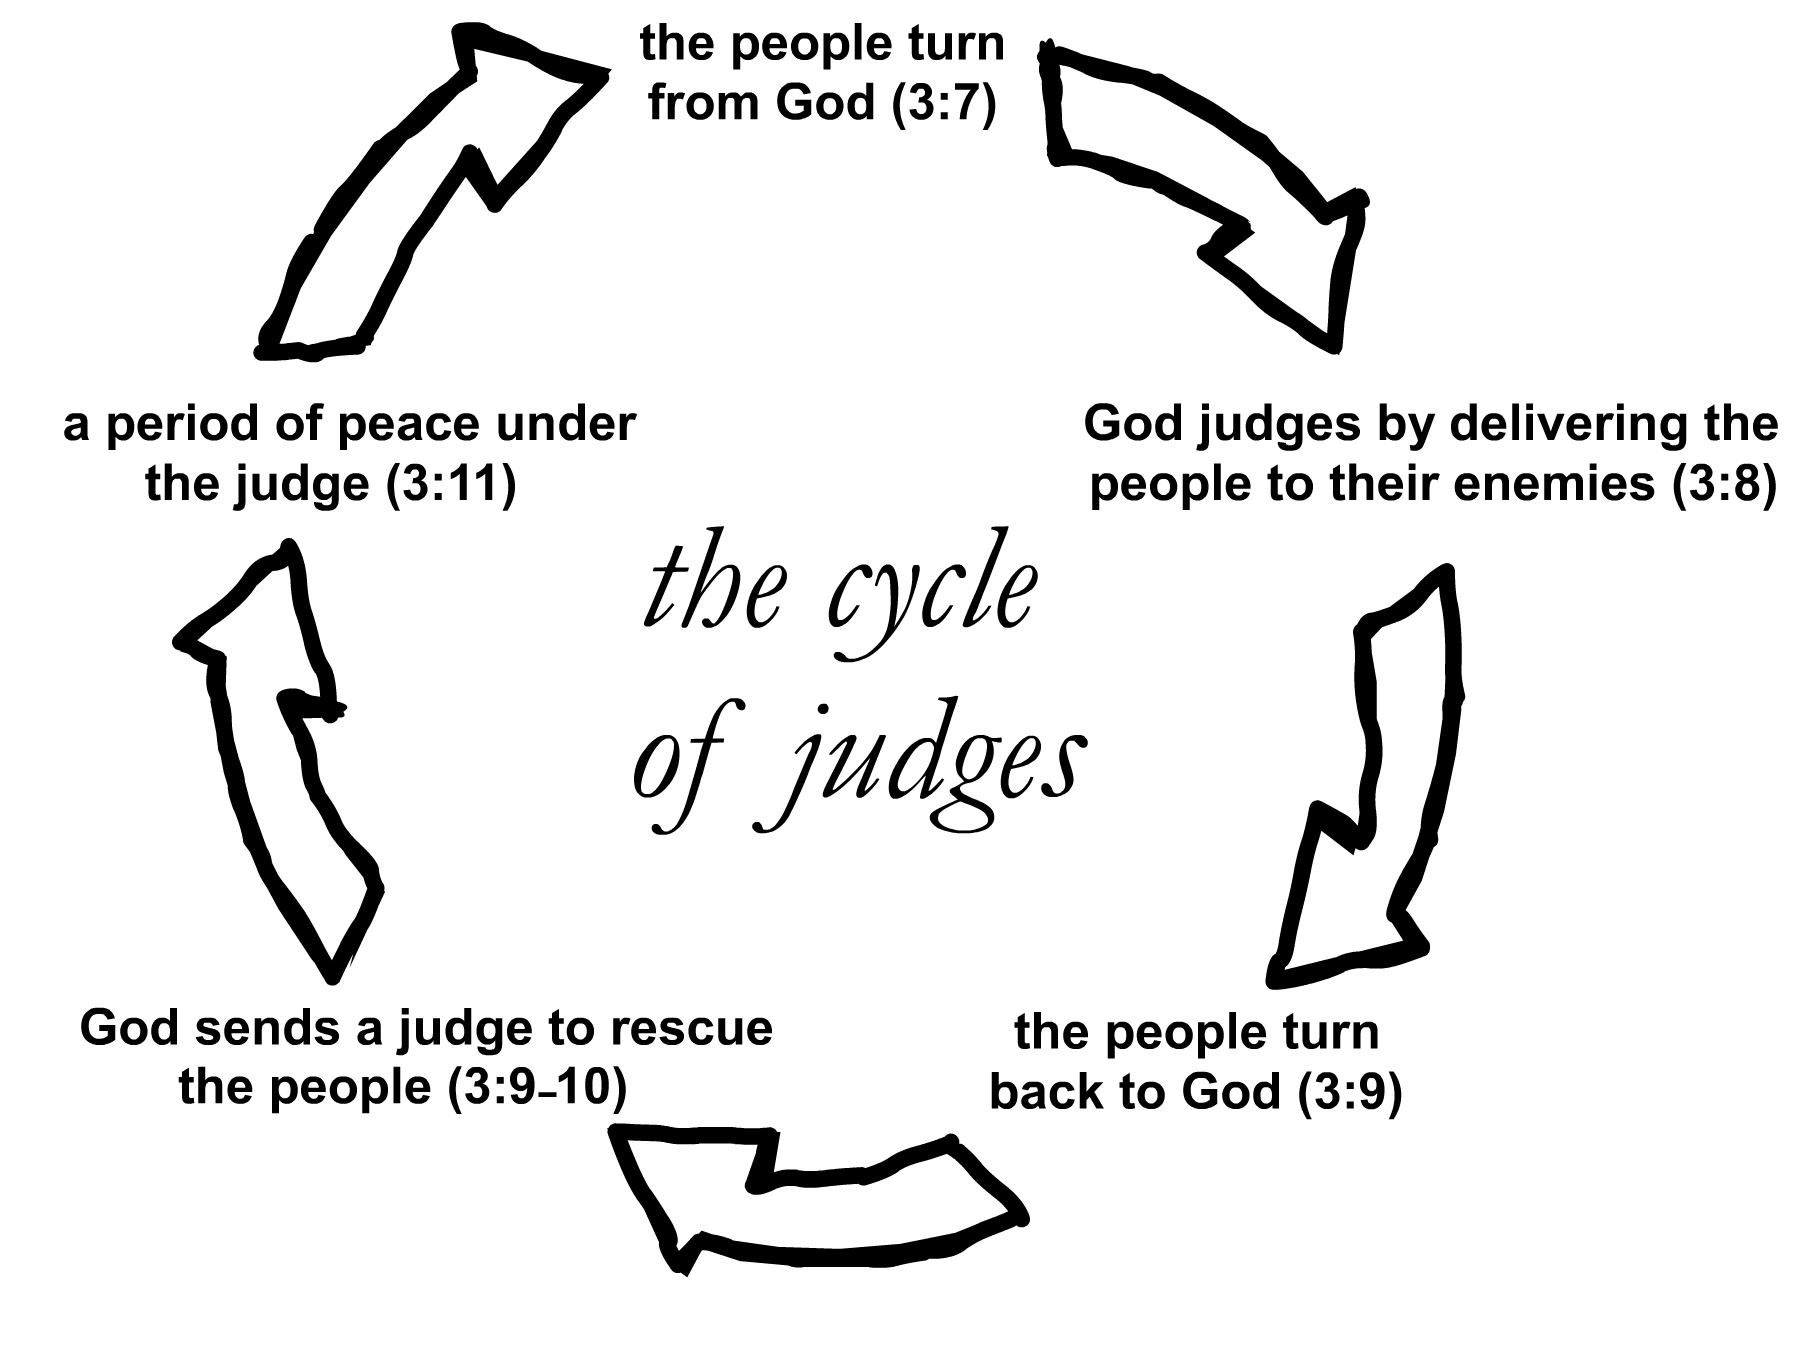 Cycle-of-Judges.jpeg